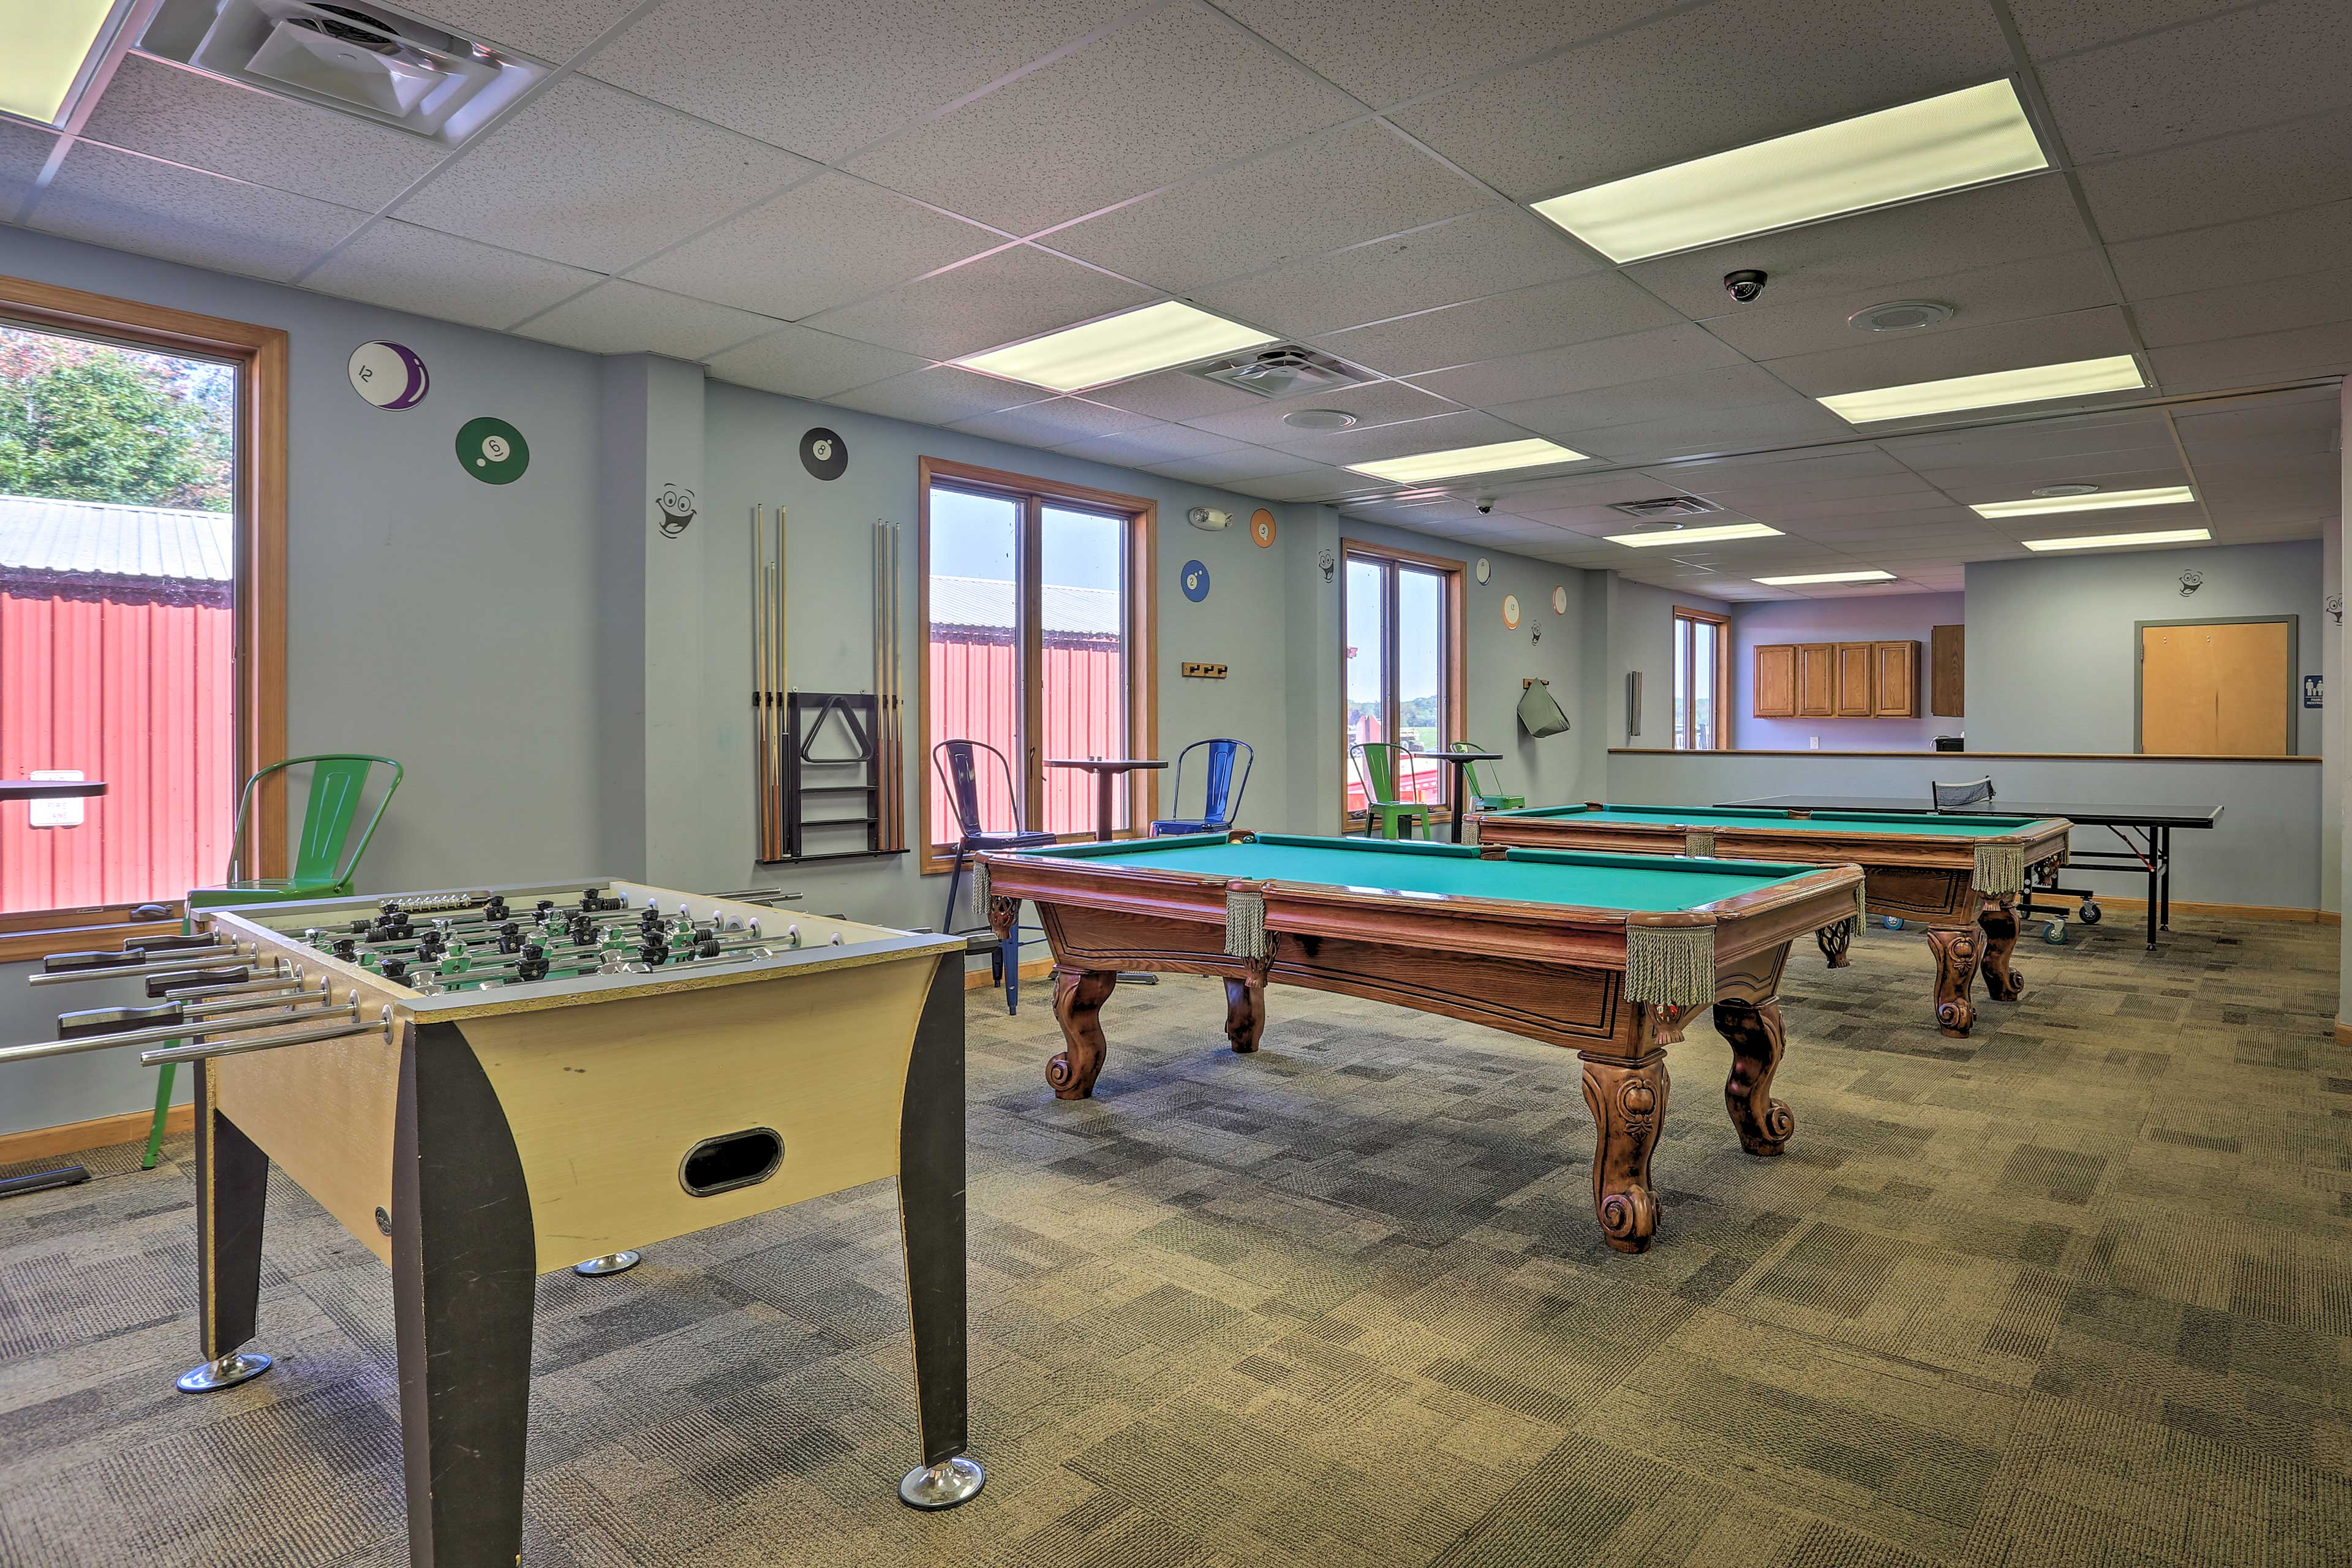 Challenge someone to a game of pool in the game room.